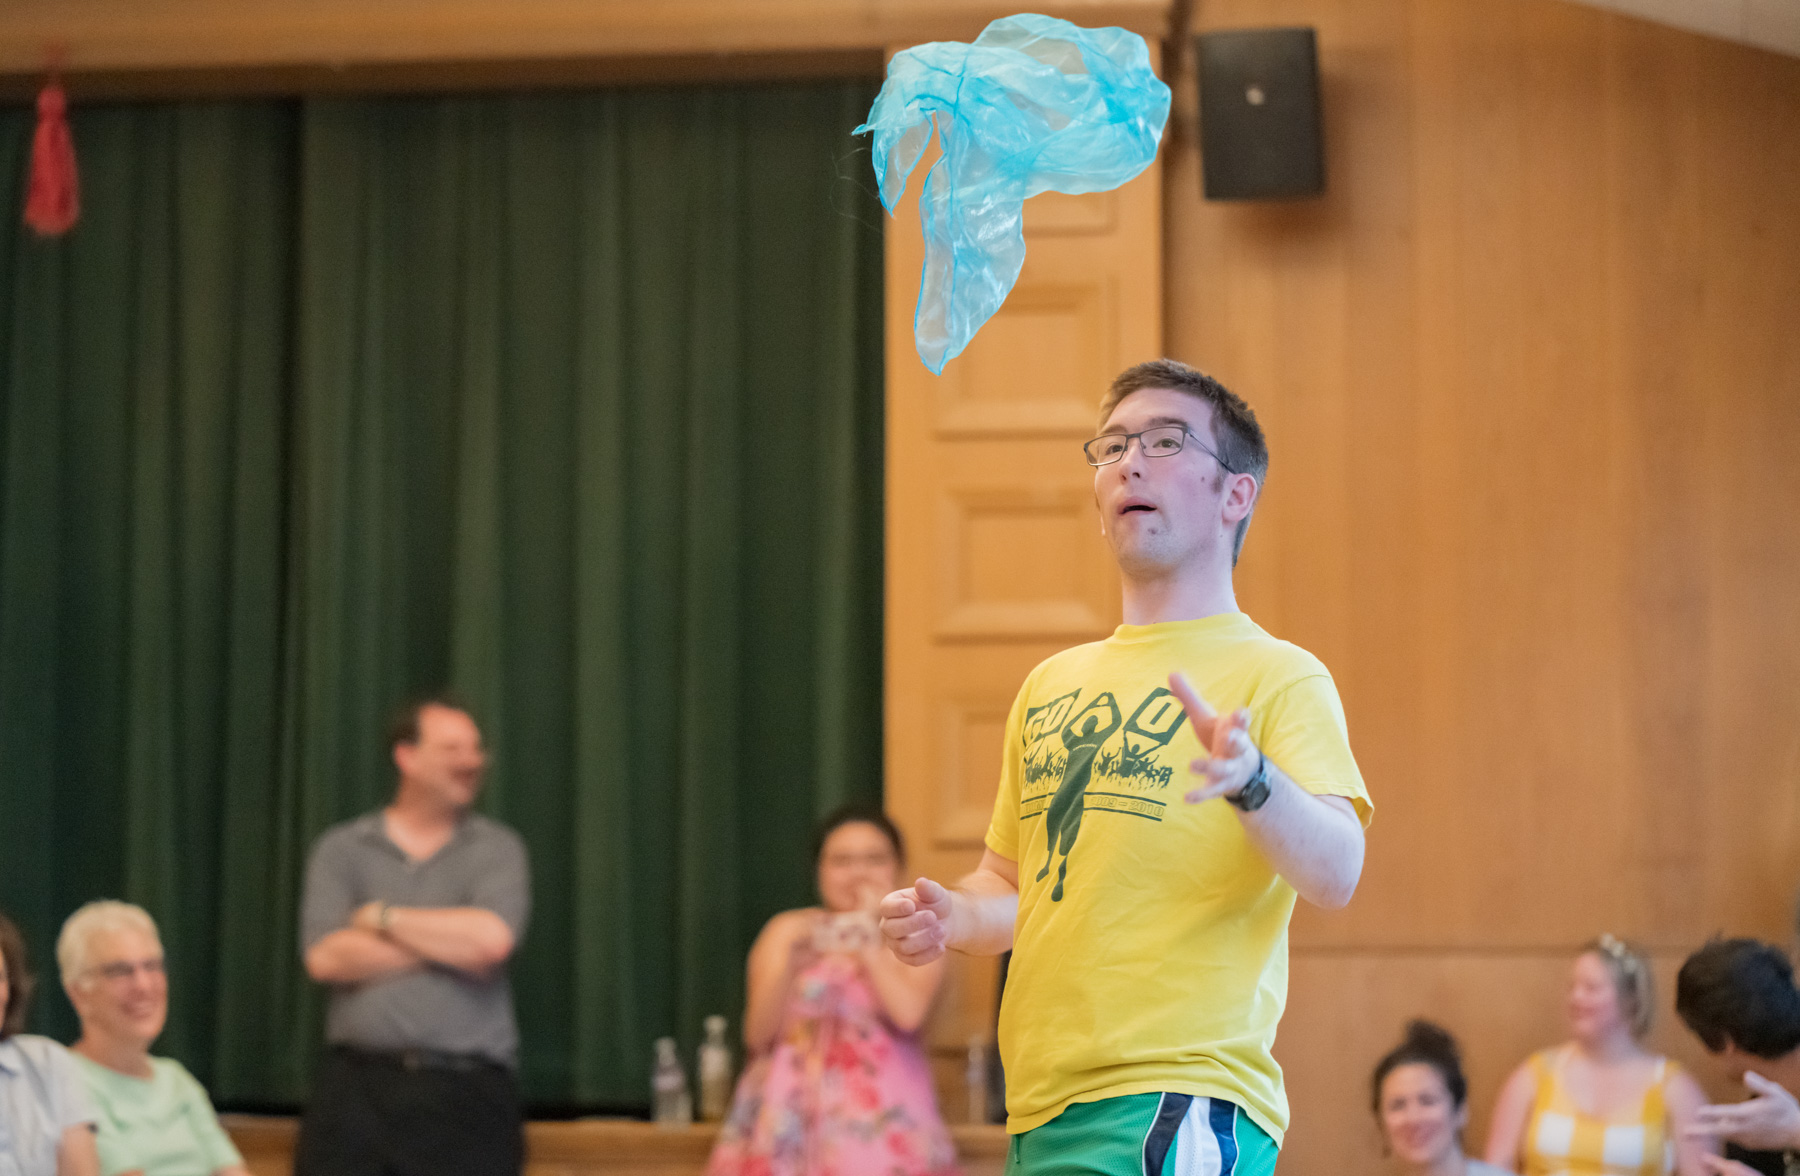 Man in yellow t-shirt throws a circus scarf in the air.